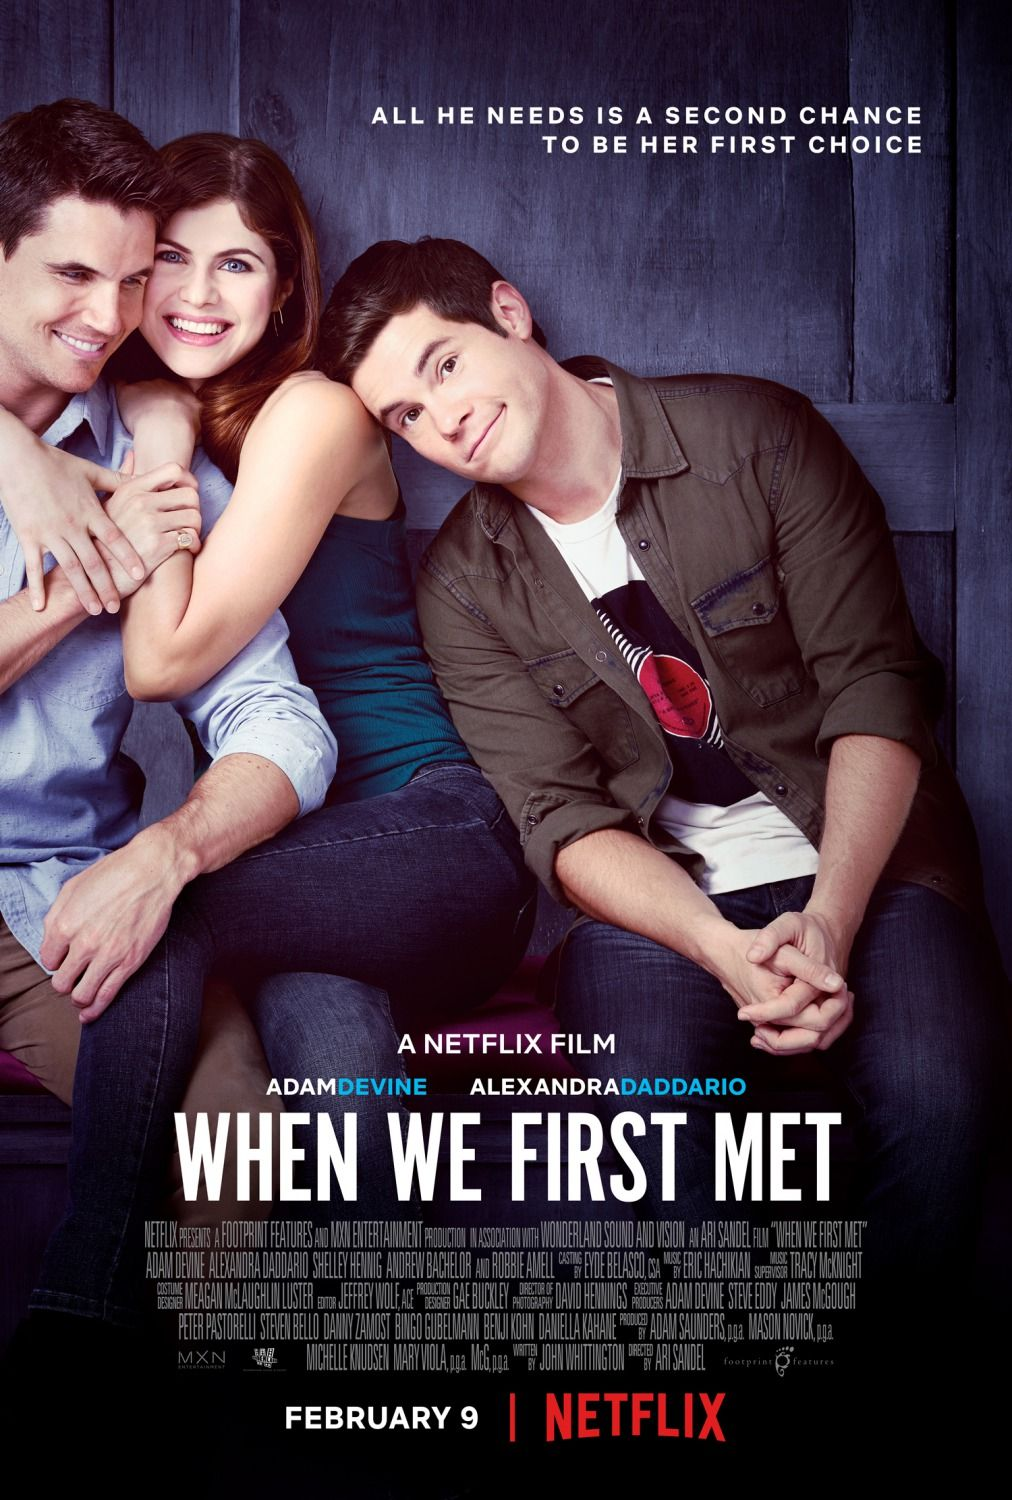 Trailer Images And Poster For When We First Met Starring